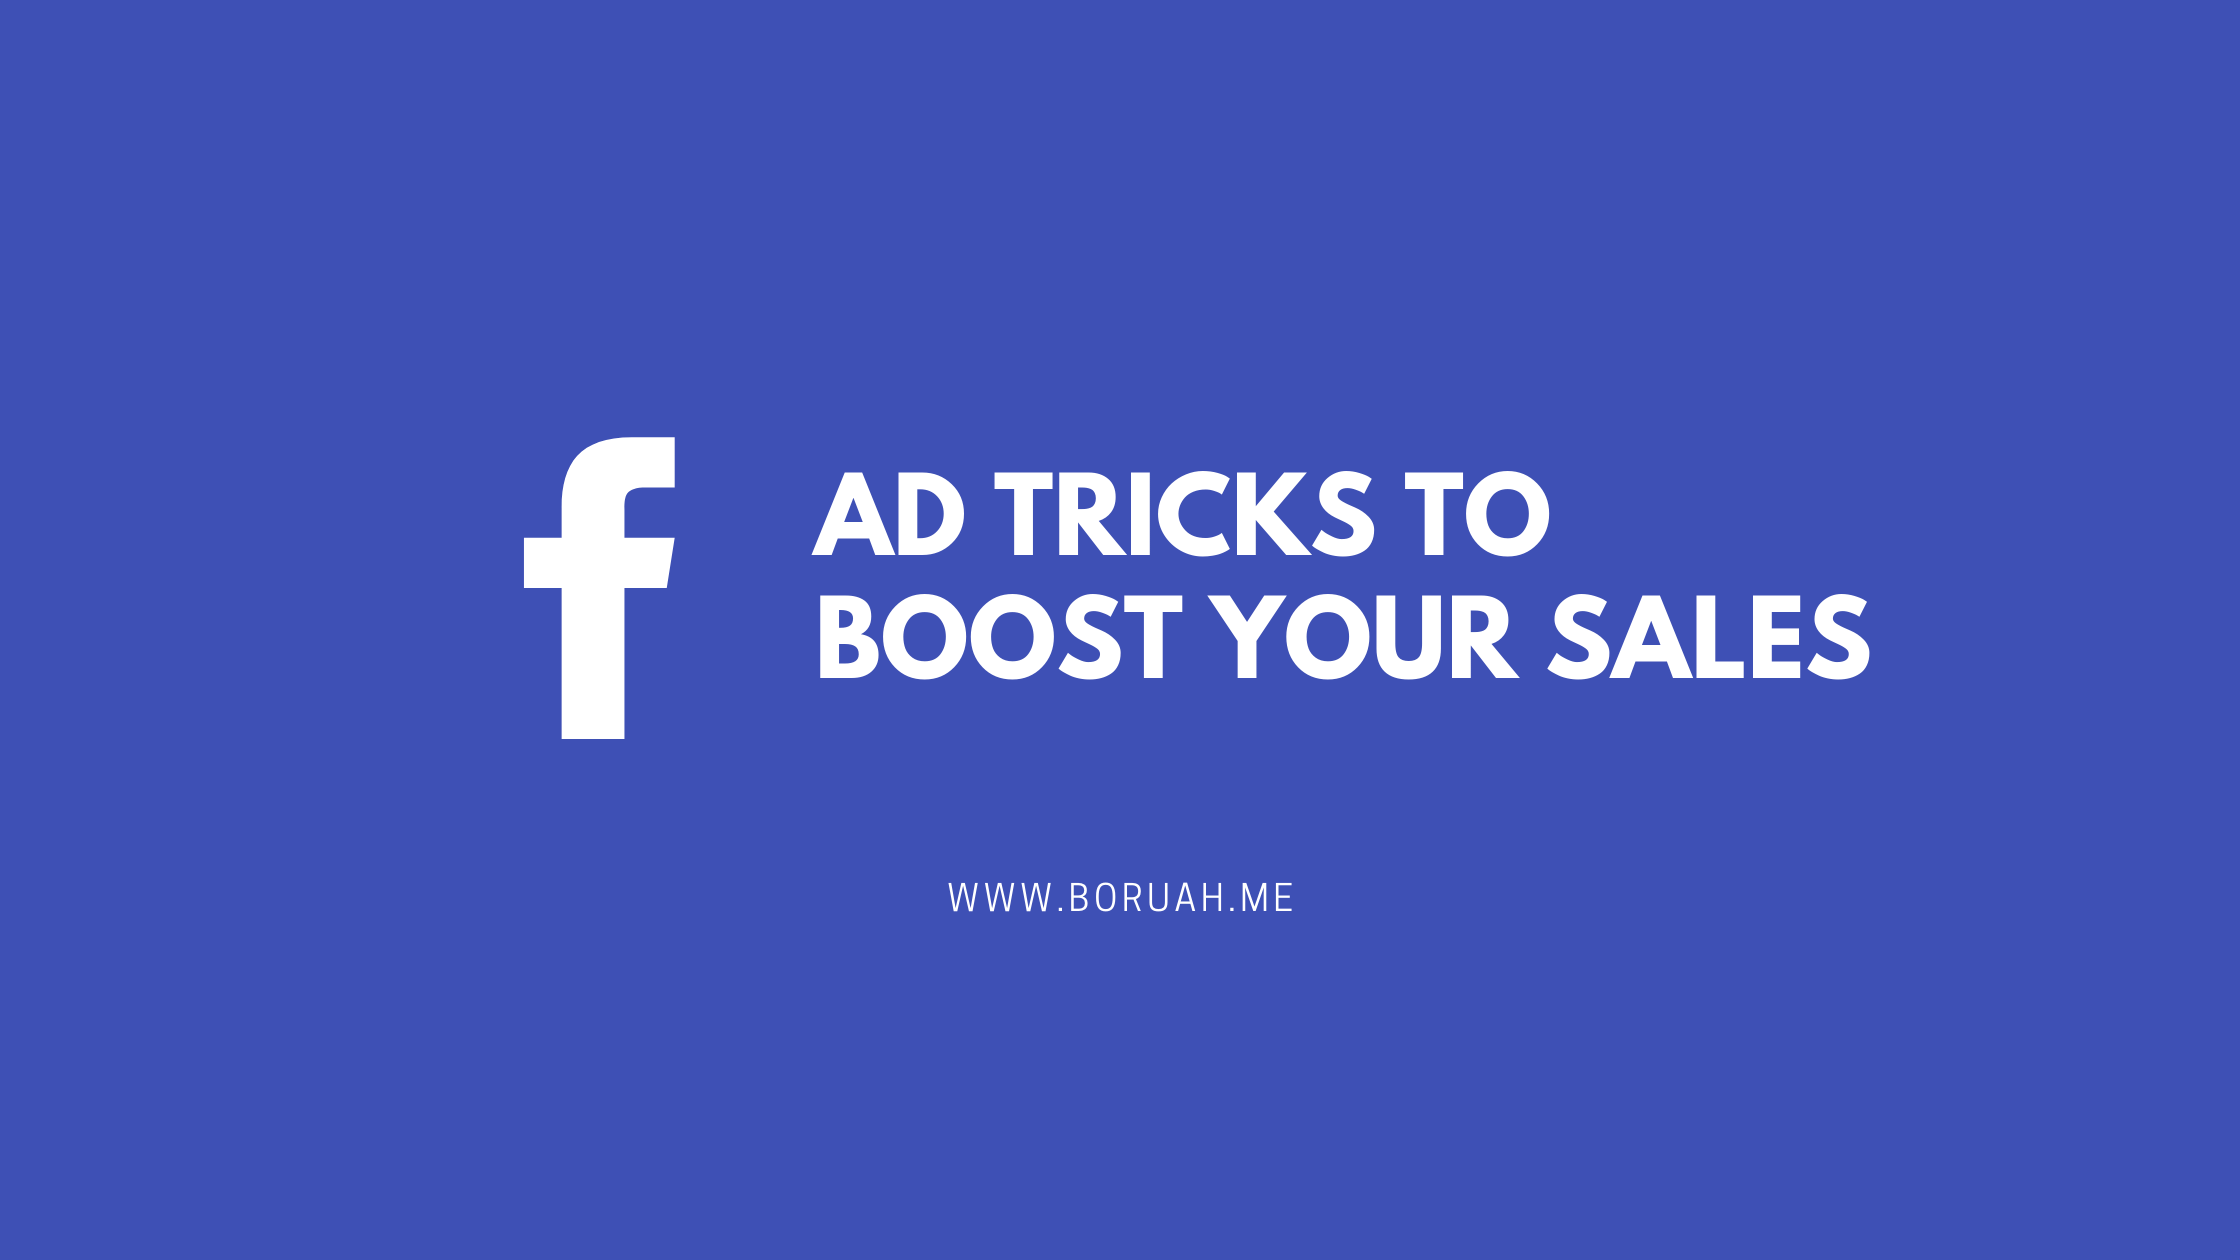 Facebook ad tricks to boost sales